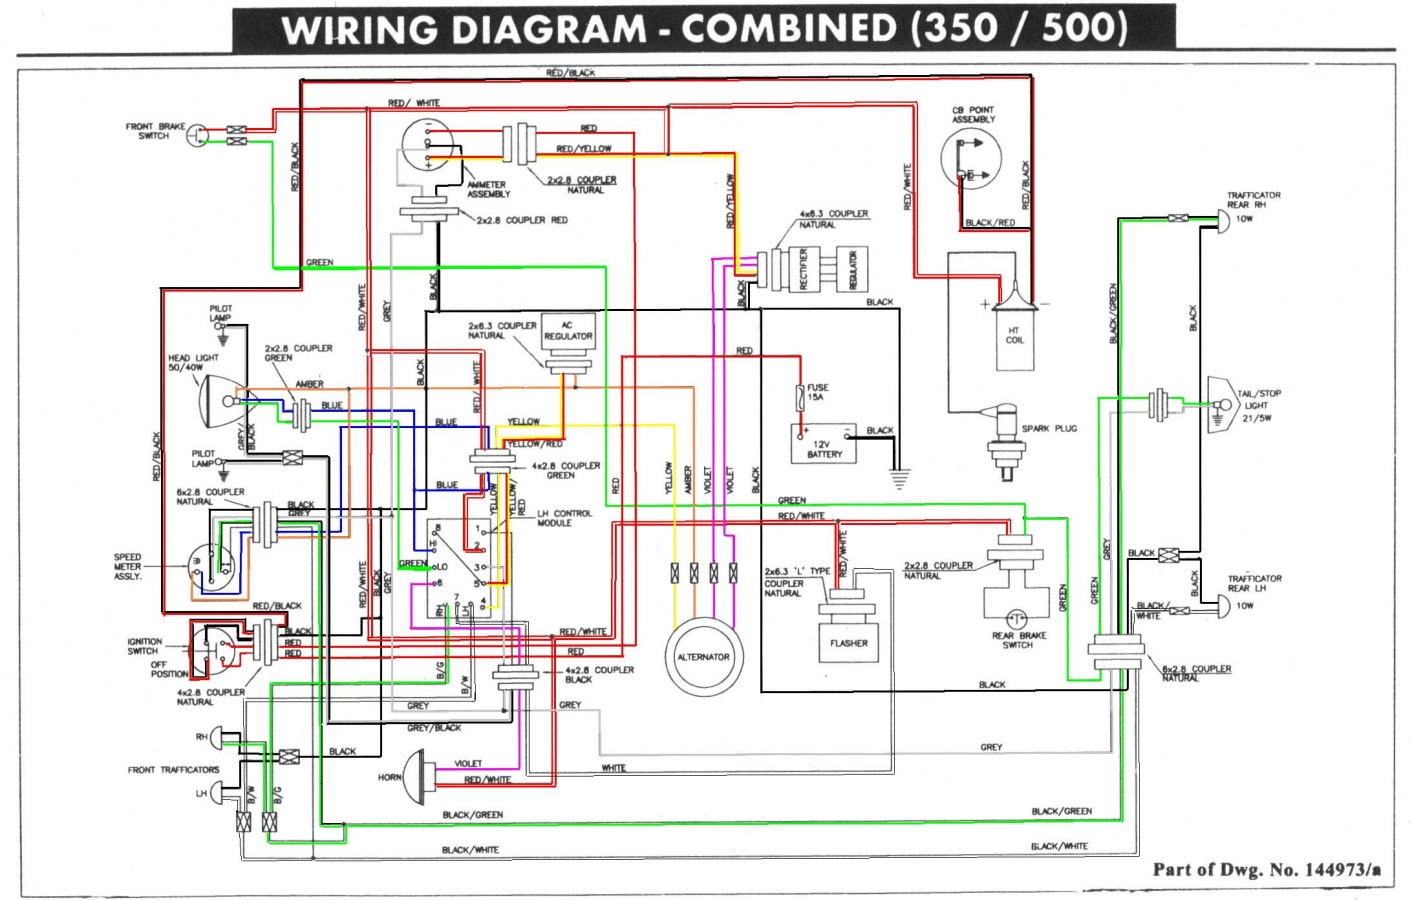 diagrams 875667 royal enfield 350 wiring diagram royal enfield royal enfield wiring diagrams at mr168.co